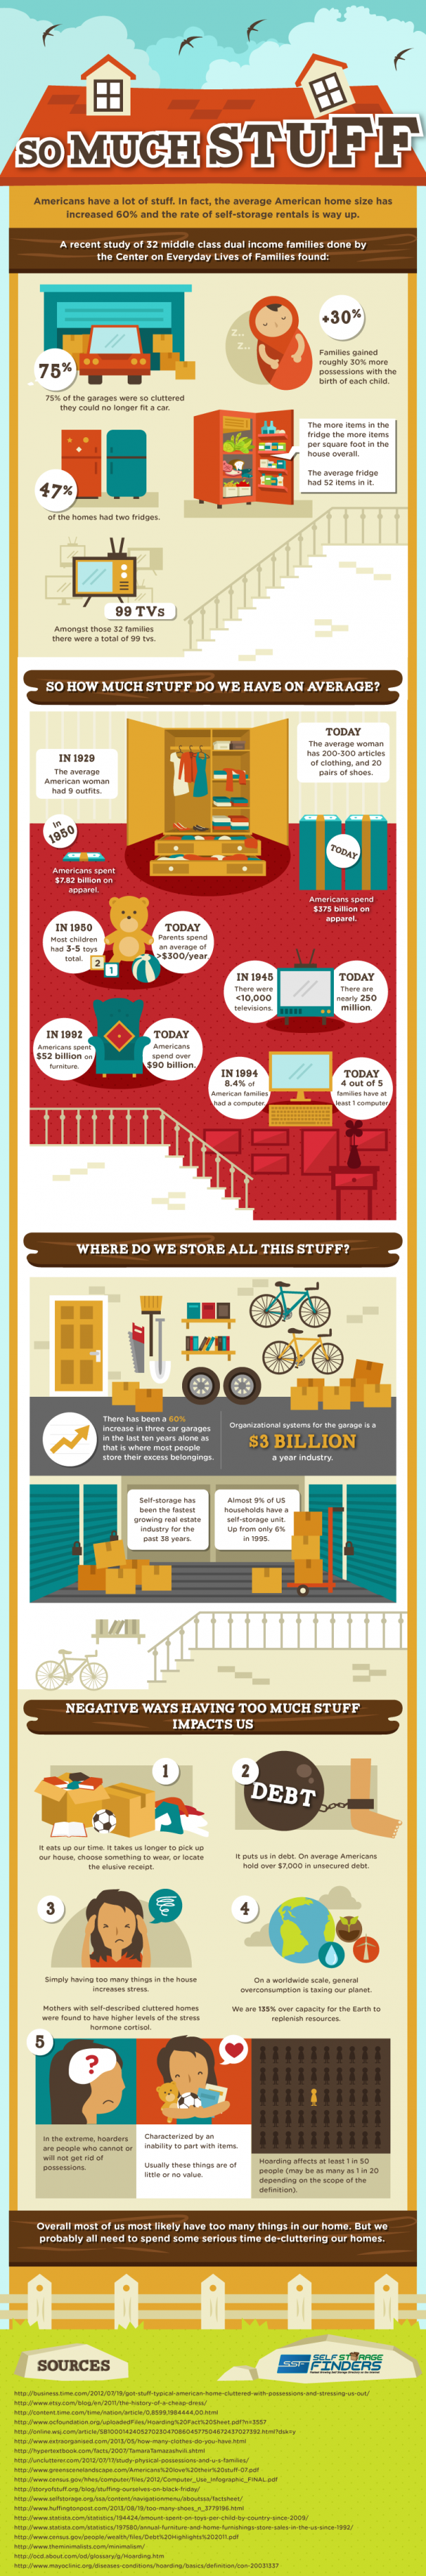 so-much-stuff-infographic